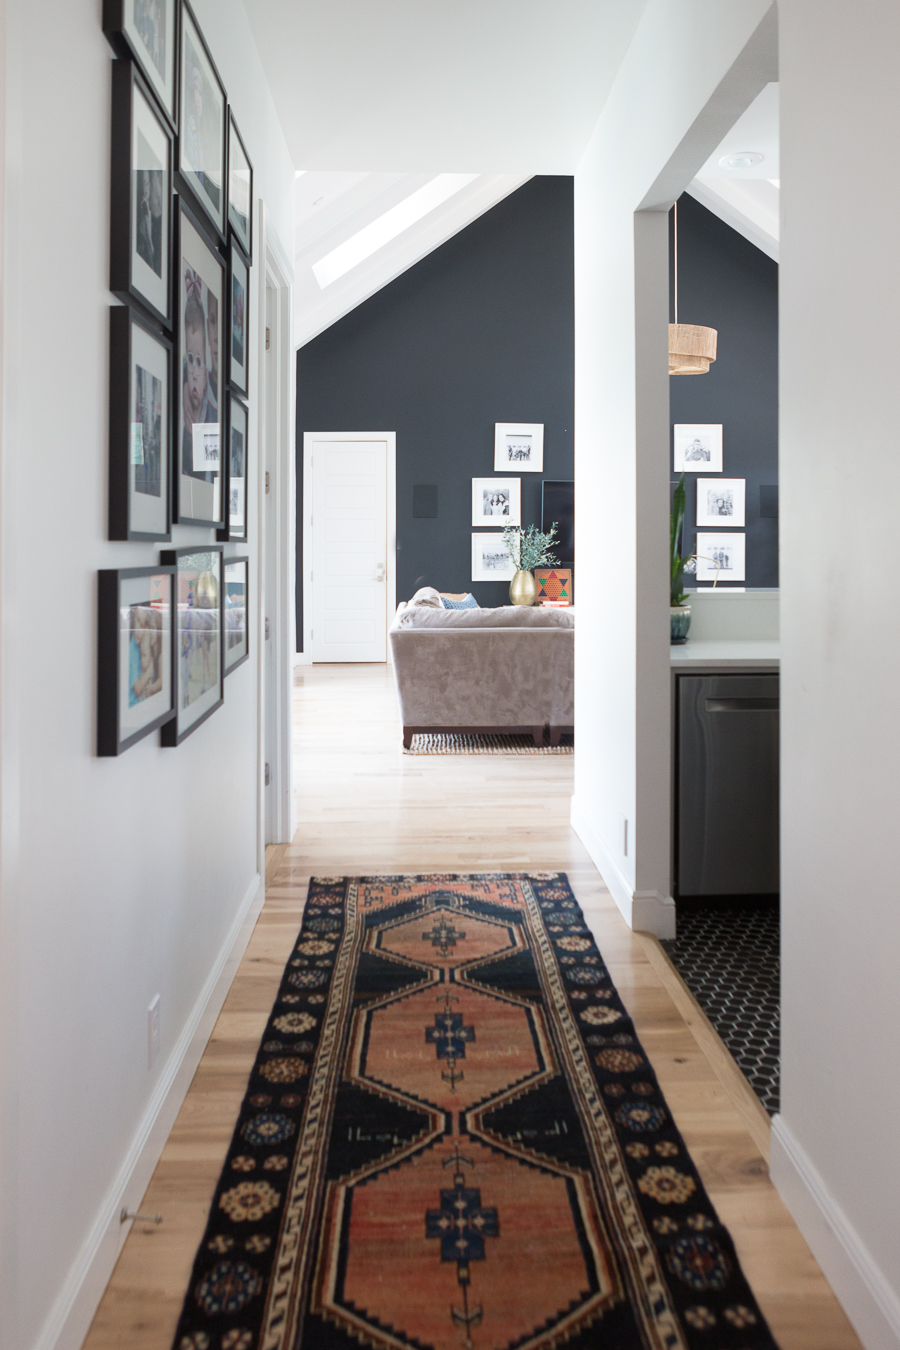 TEEN HANGOUT ROOM DESIGN PLAN AND HANGING CHAIRS looking down the hallway with a dark colored runner and wall art